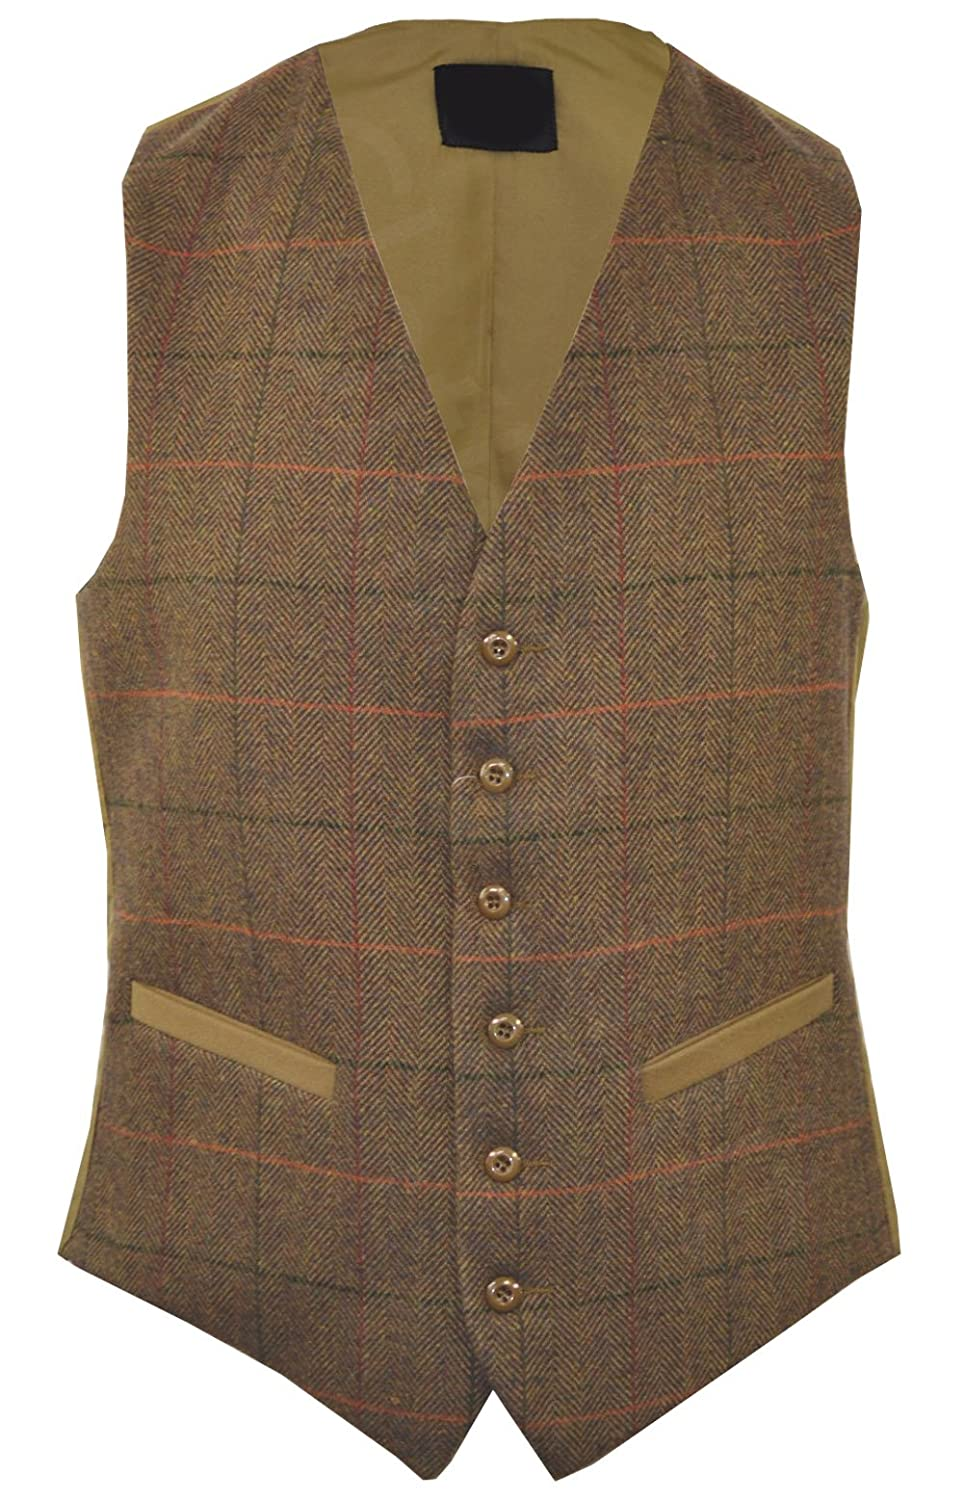 Clothing_unit Mens Classic Wool Blend Derby Tweed Check Waistcoat Herringbone Formal Vest S - 3XL